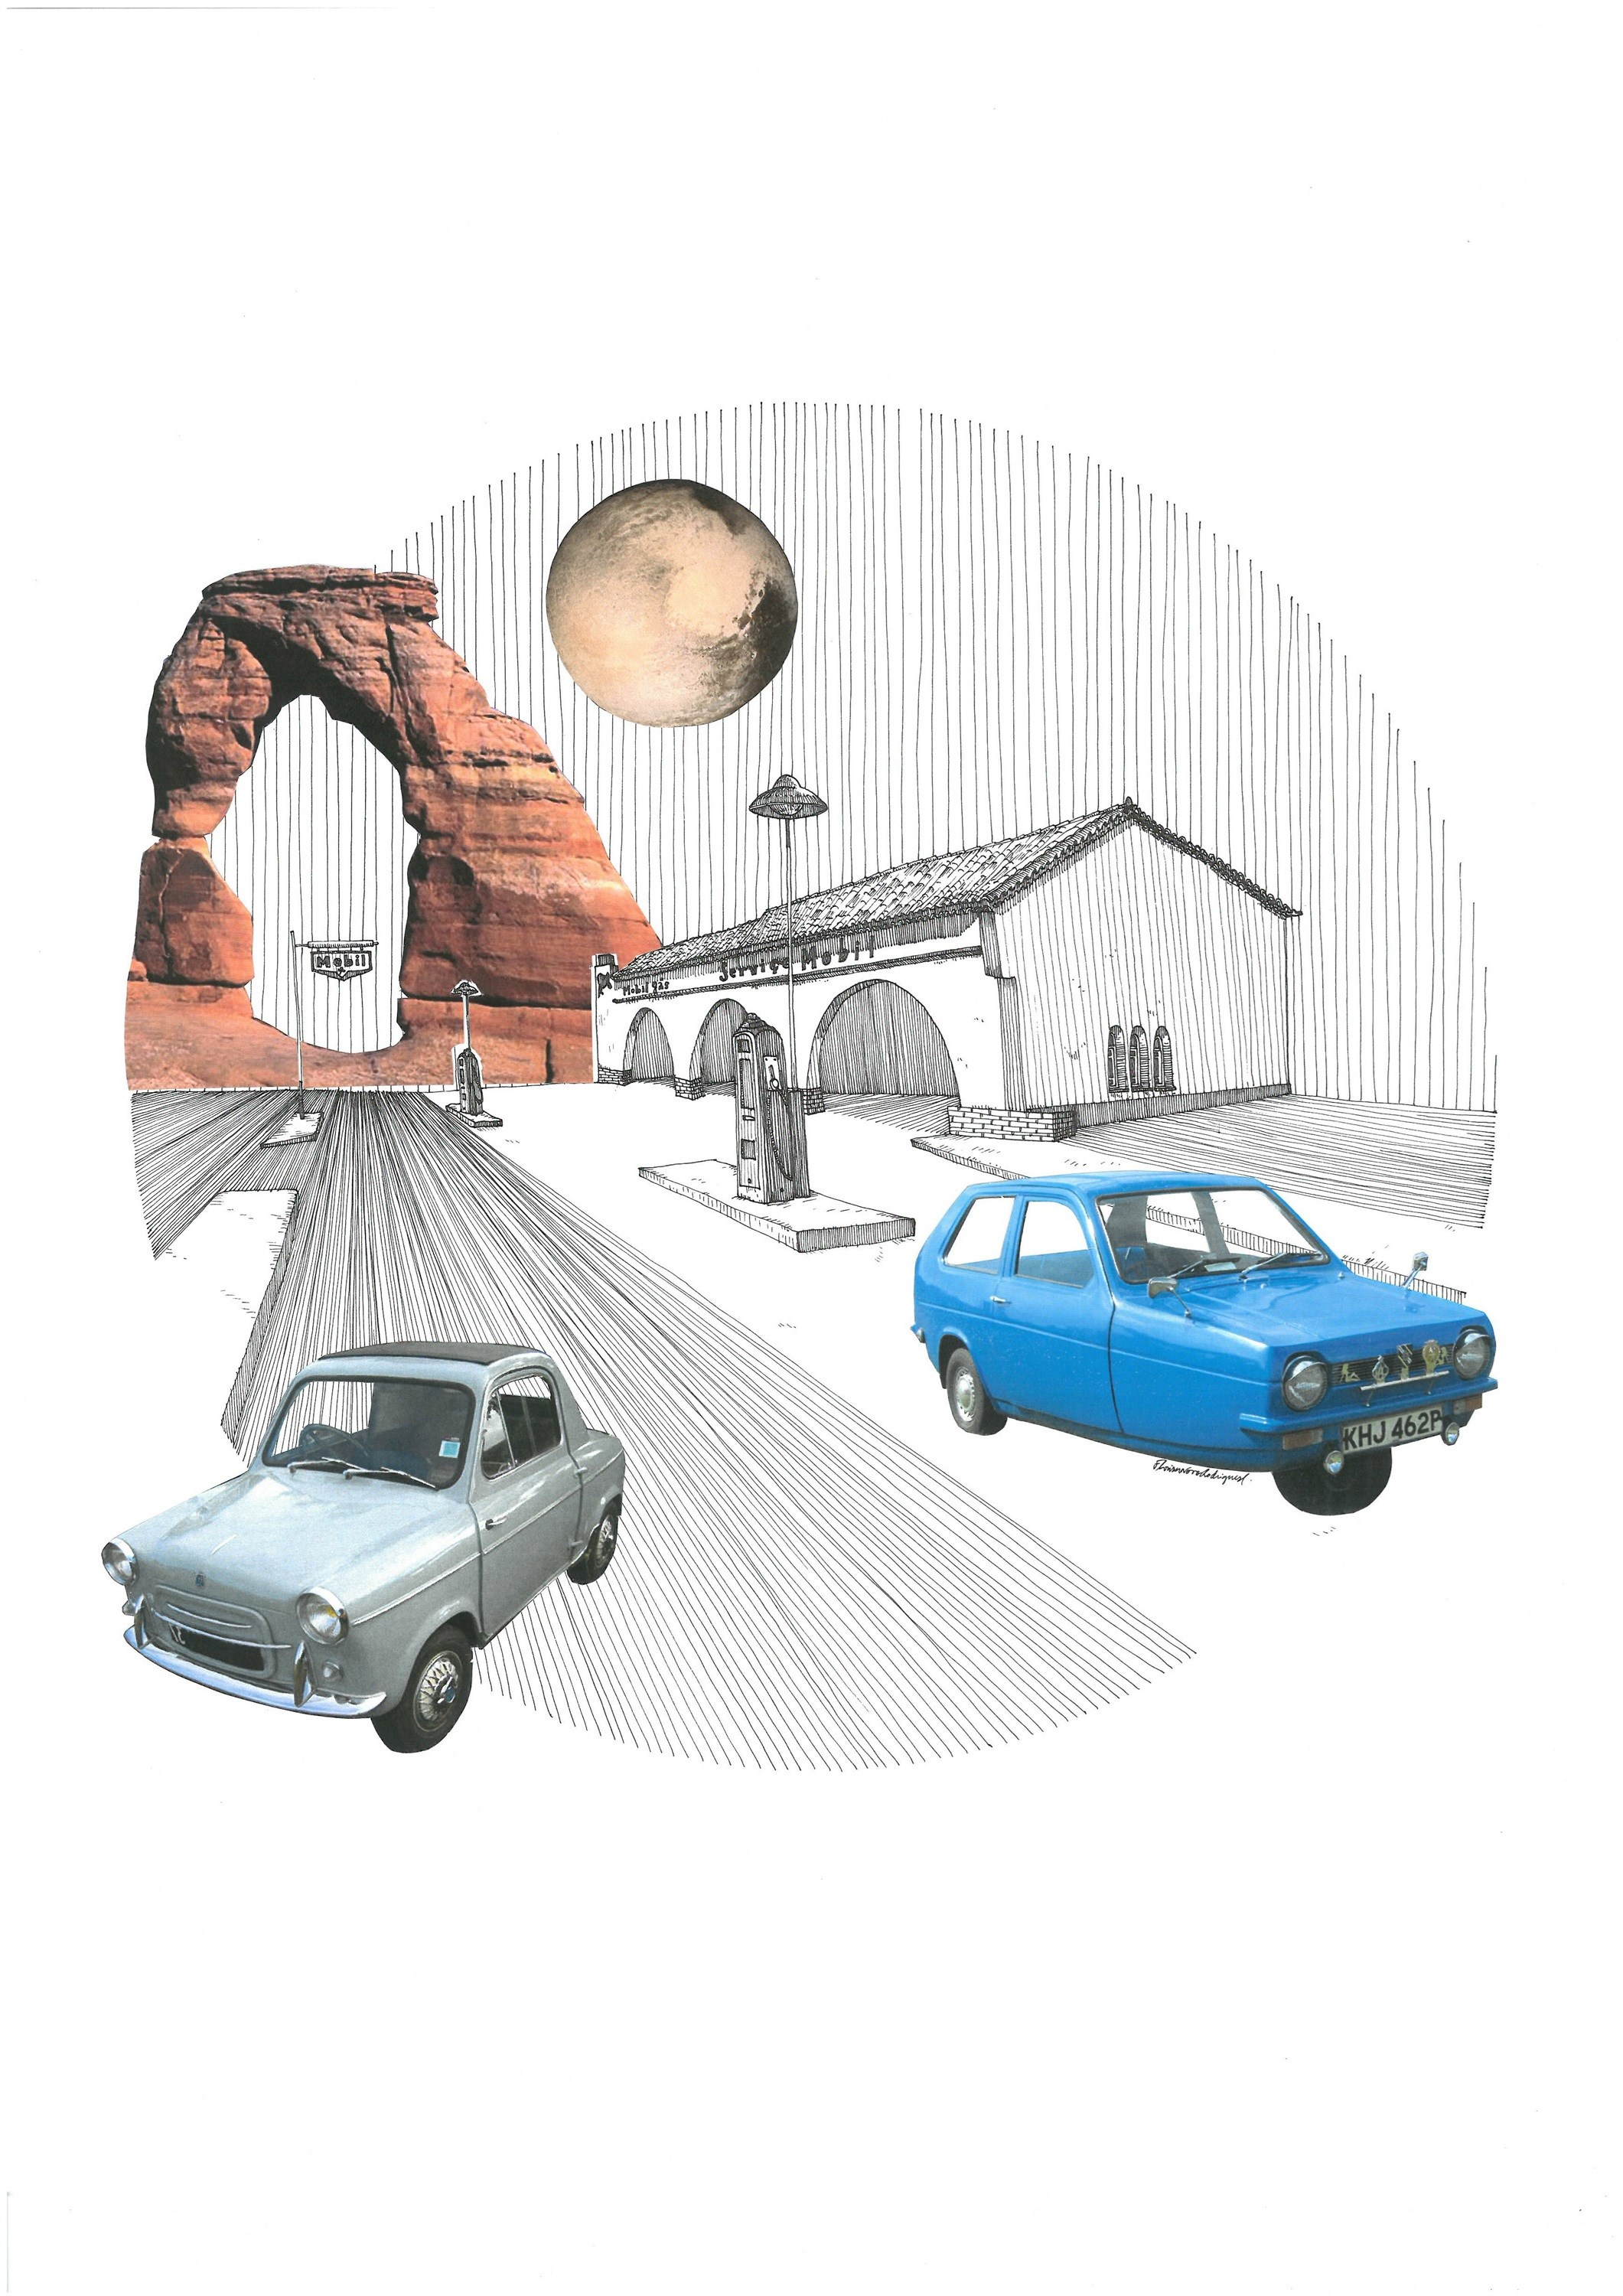 Reliant Robin, original Architecture Collage Drawing and Illustration by Florisa Novo Rodrigues